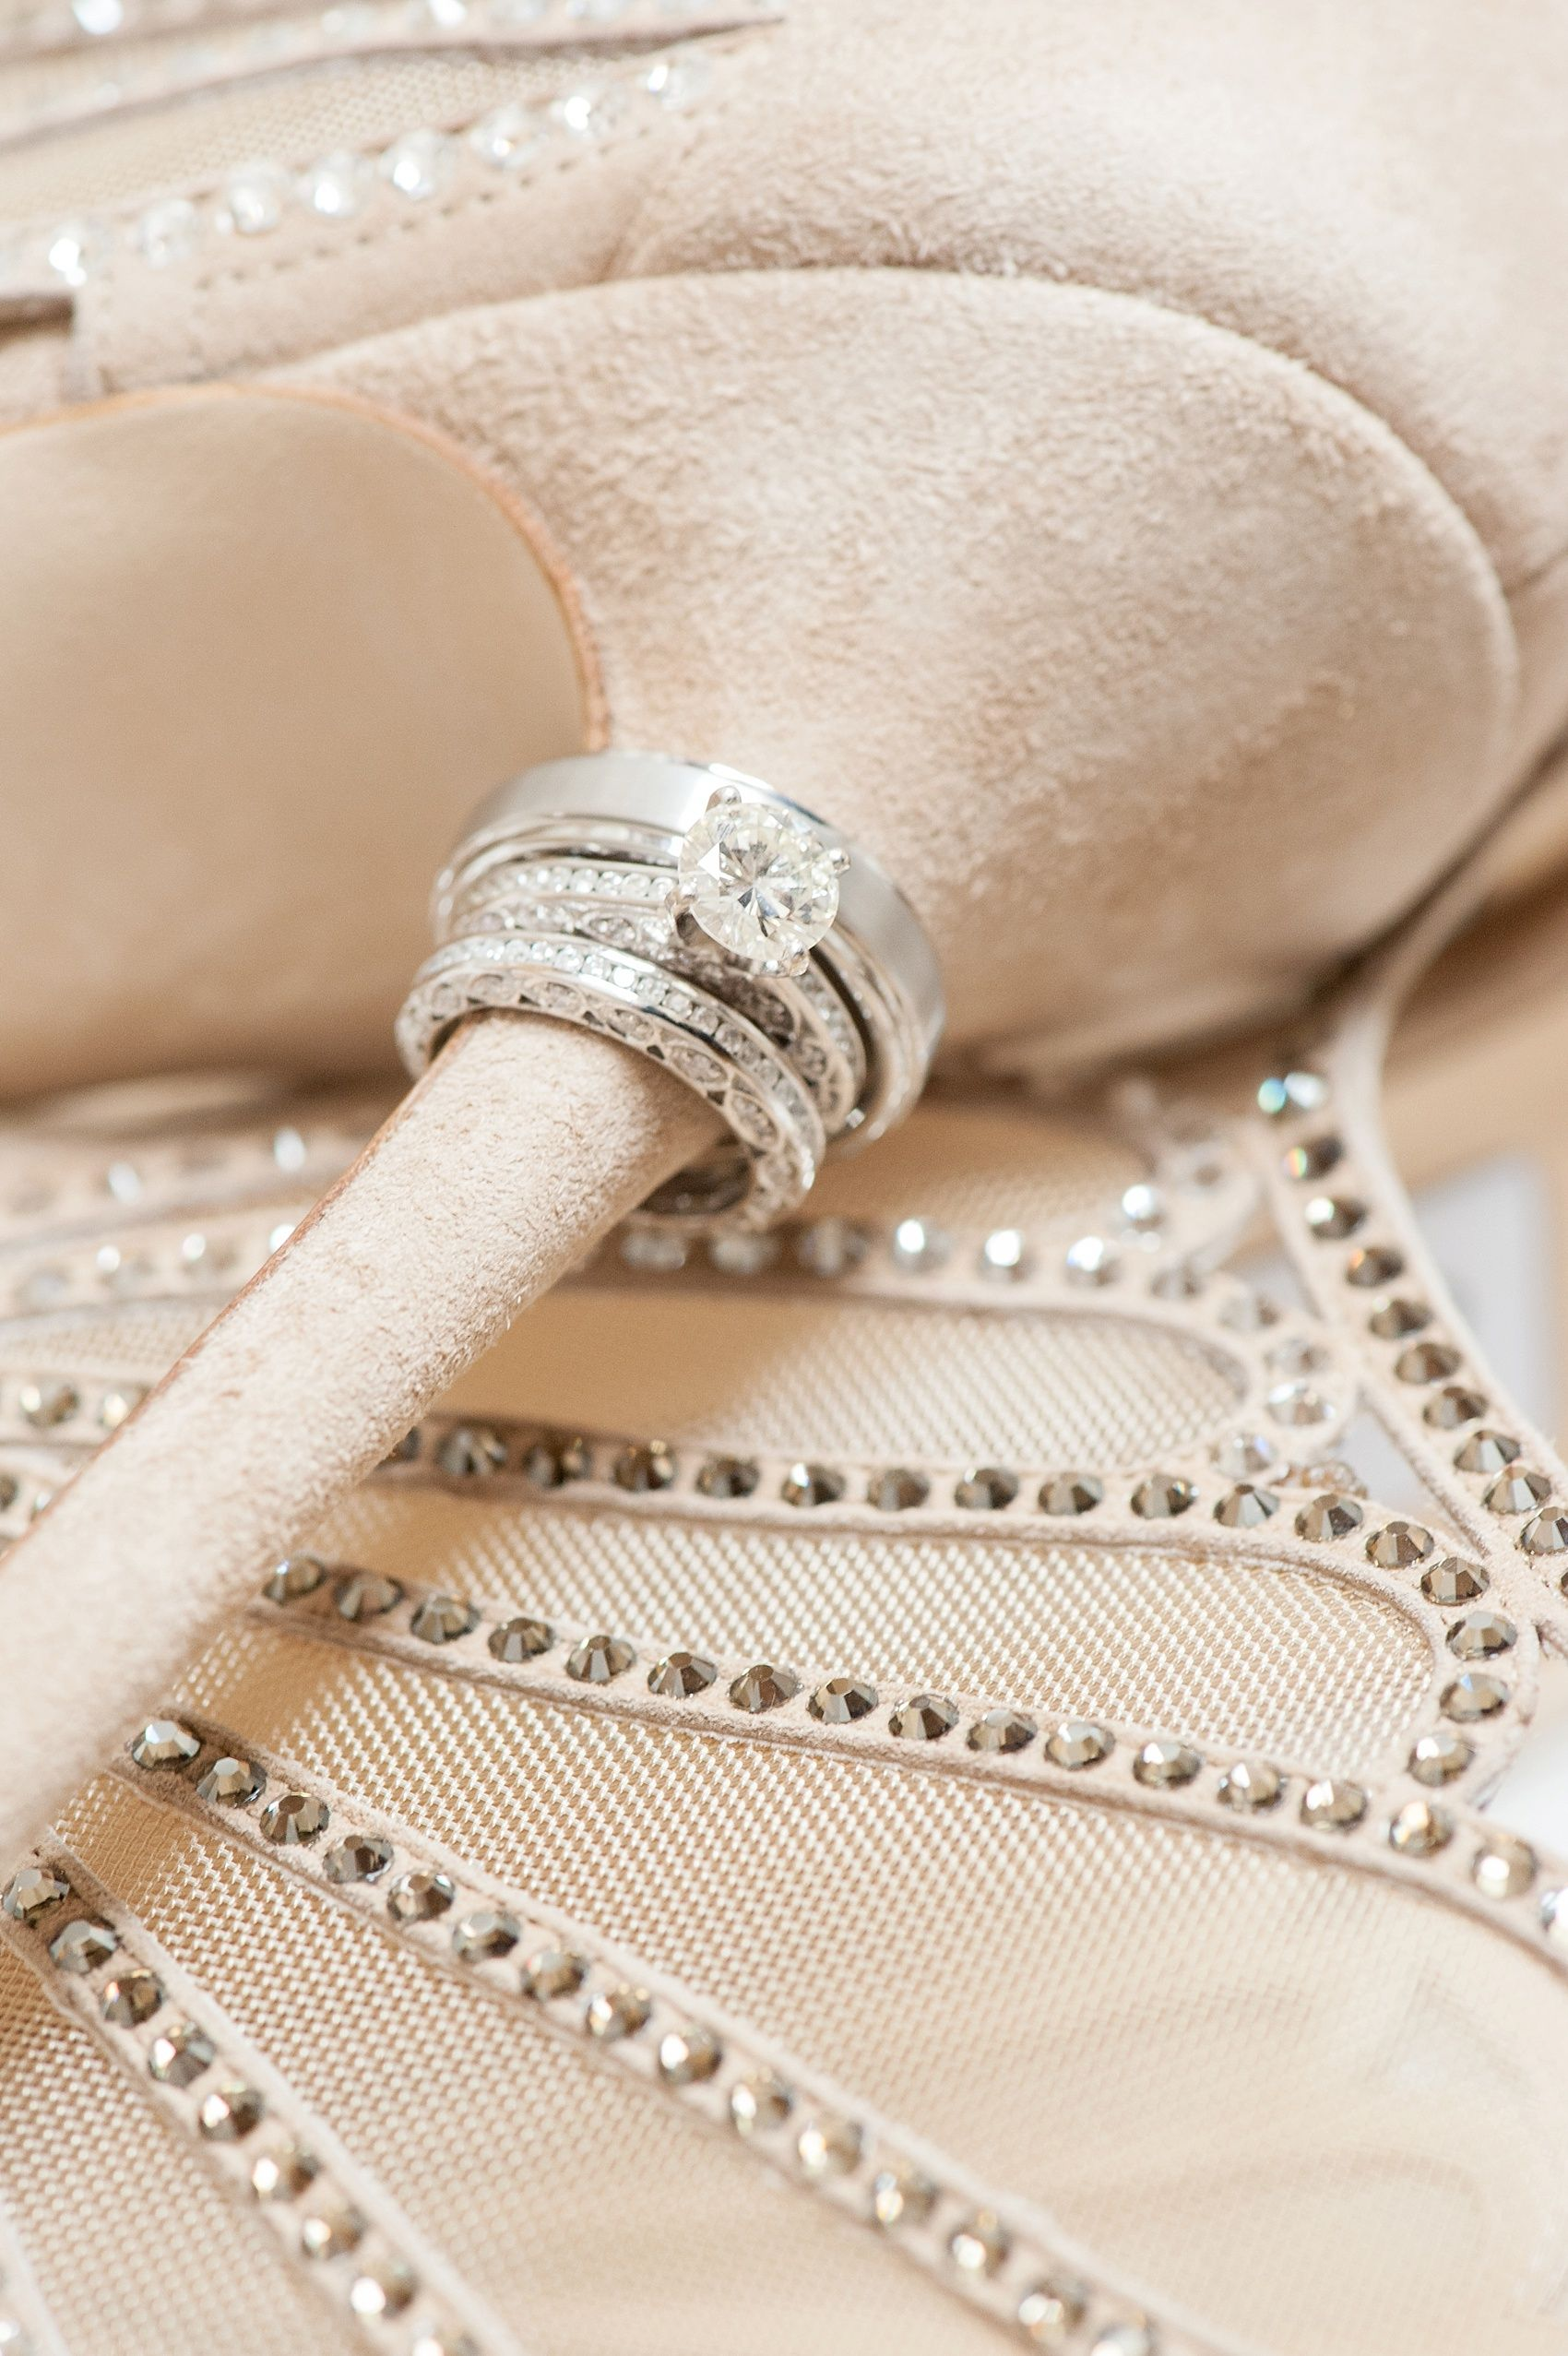 Detail ring shot on Jimmy Choo nude suede heels. Stonehouse at Stirling Ridge fall wedding. Photos by Mikkel Paige Photography, New Jersey wedding photographer. #mikkelpaigephotography #ringshots #jimmychoo #weddingshoes #weddingheels